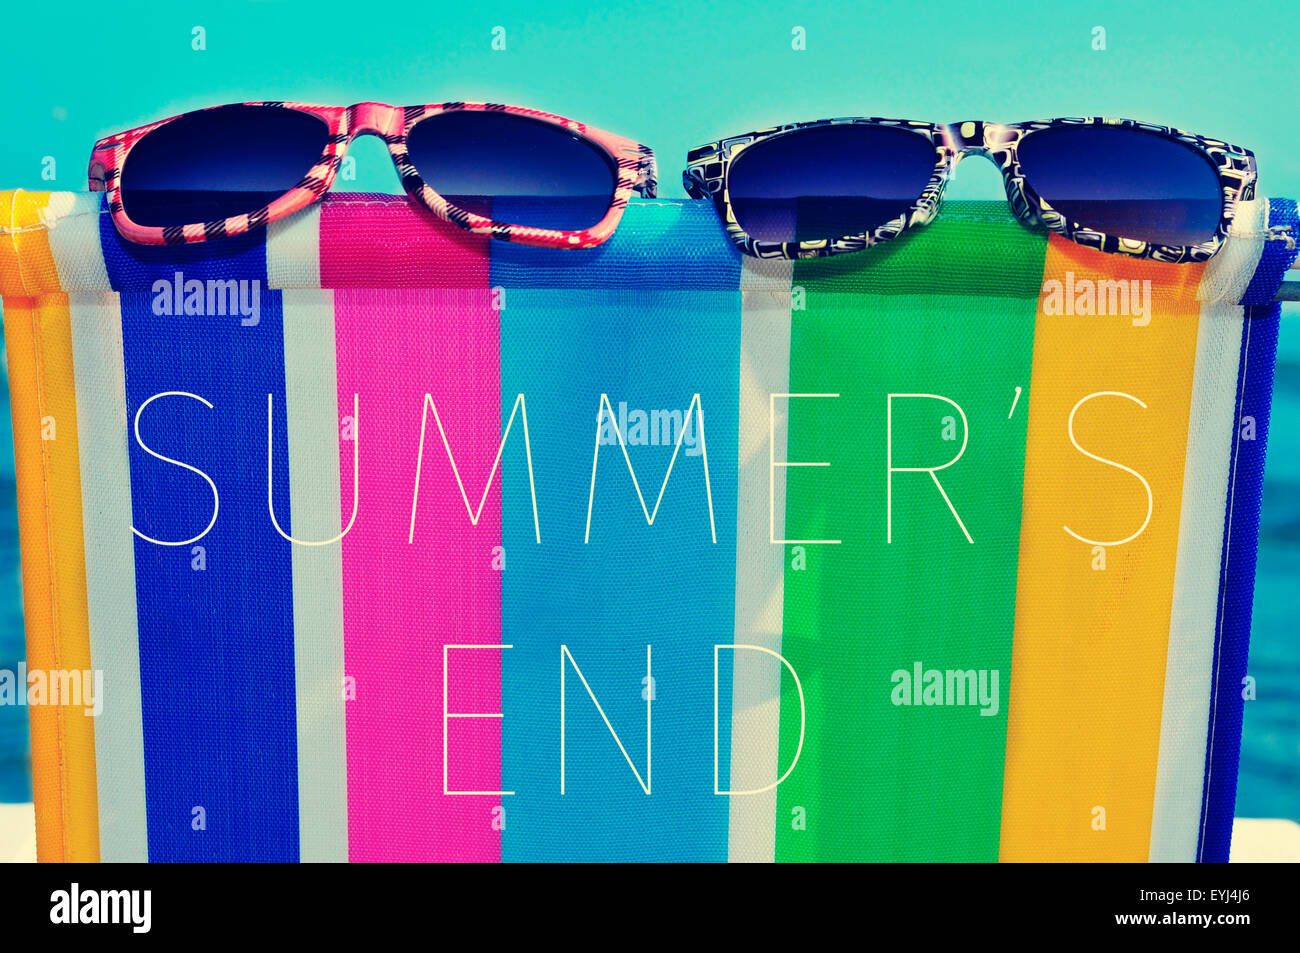 a pair of sunglasses on a colorful deck chair and the text summers end - Stock Image